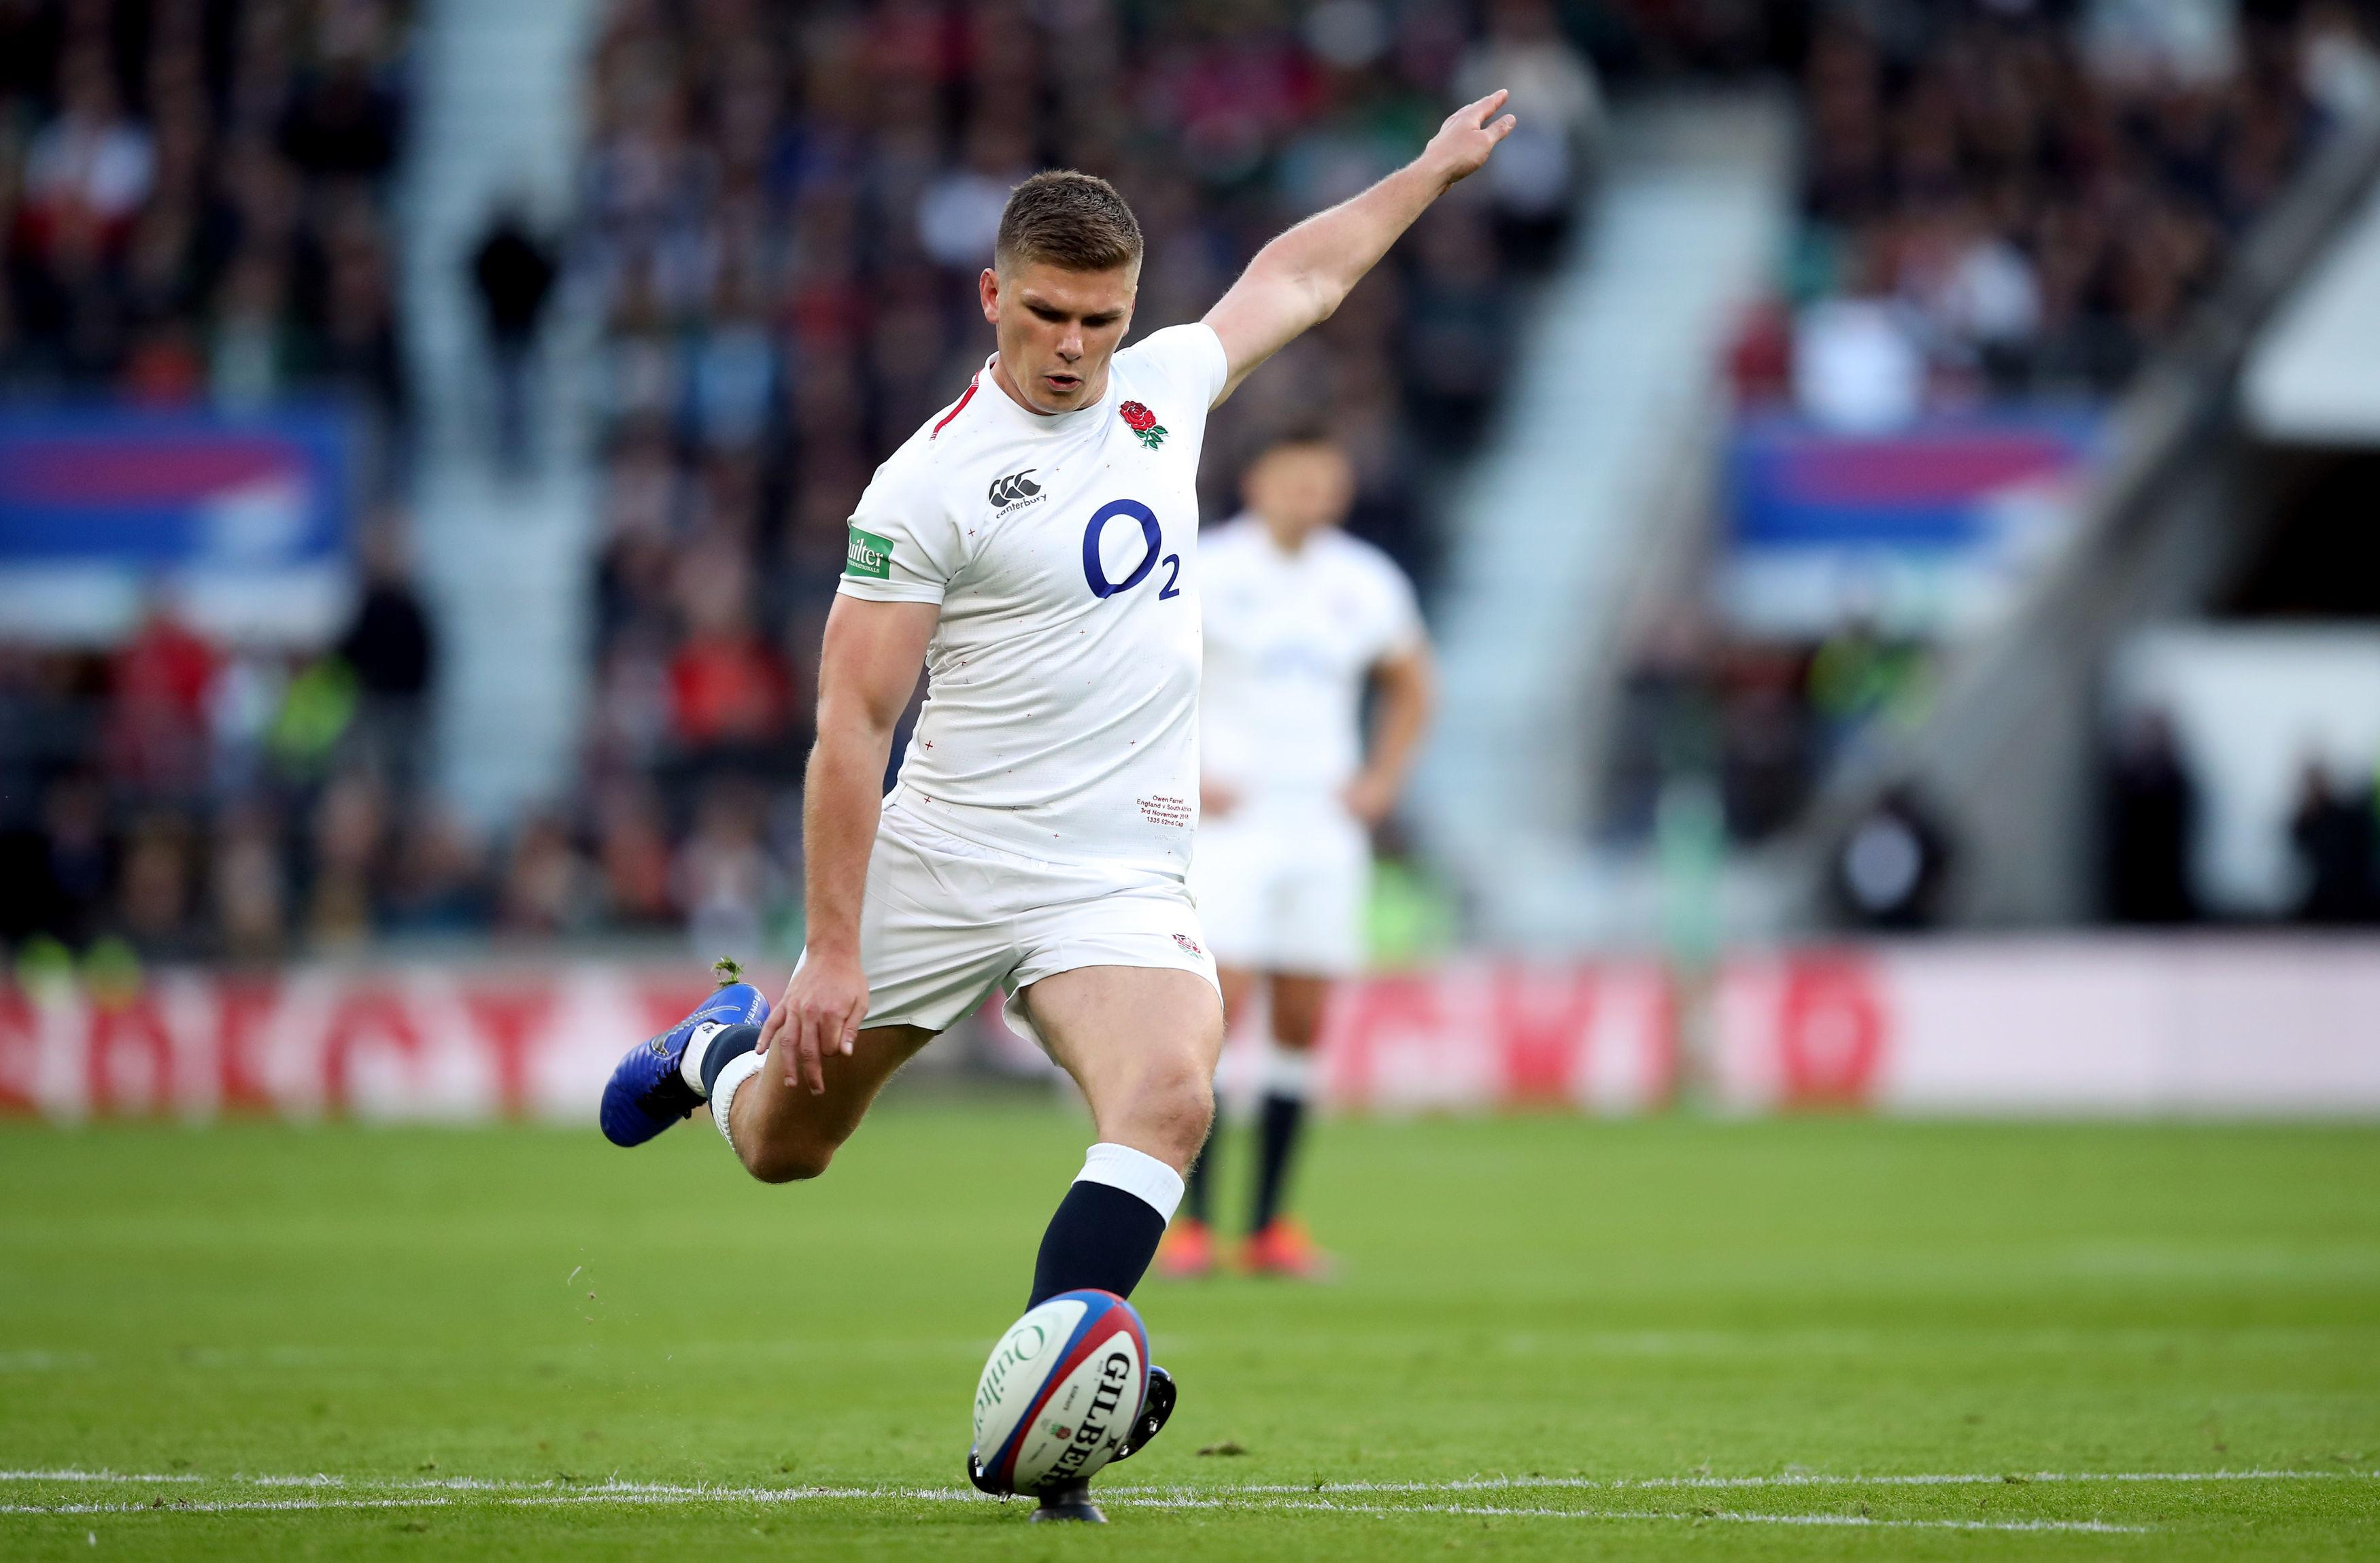 Farrell scored a late winner as the Red Rose ran out 12-11 victors at Twickenham